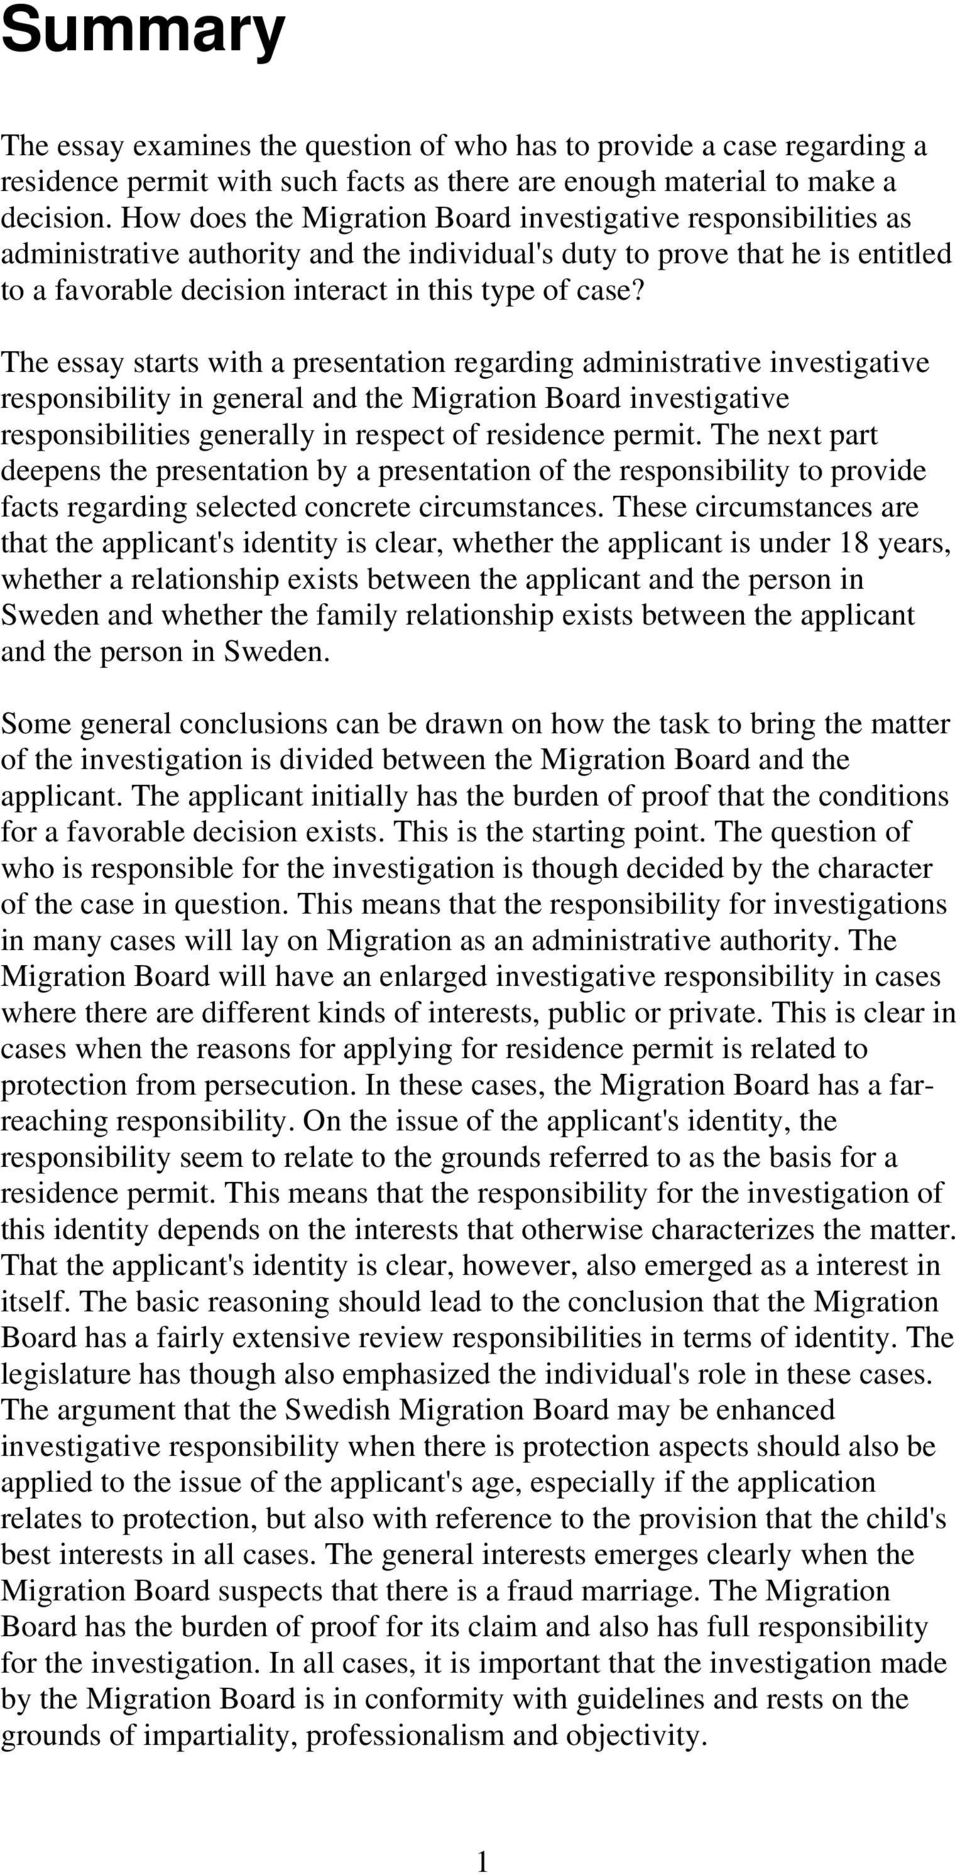 The essay starts with a presentation regarding administrative investigative responsibility in general and the Migration Board investigative responsibilities generally in respect of residence permit.